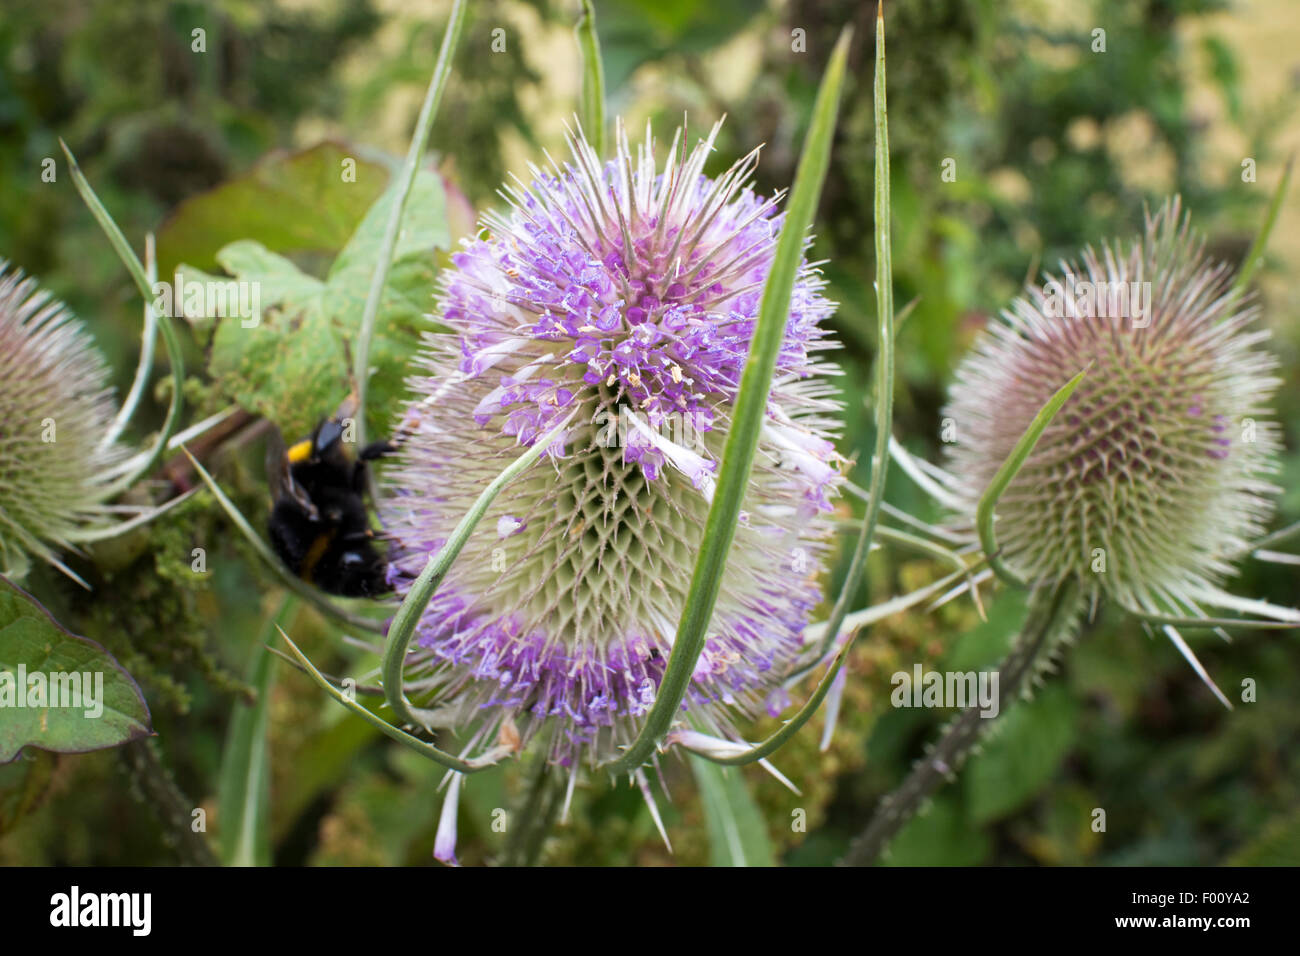 teasel dipsacus fullonum plant growing in north wales uk - Stock Image